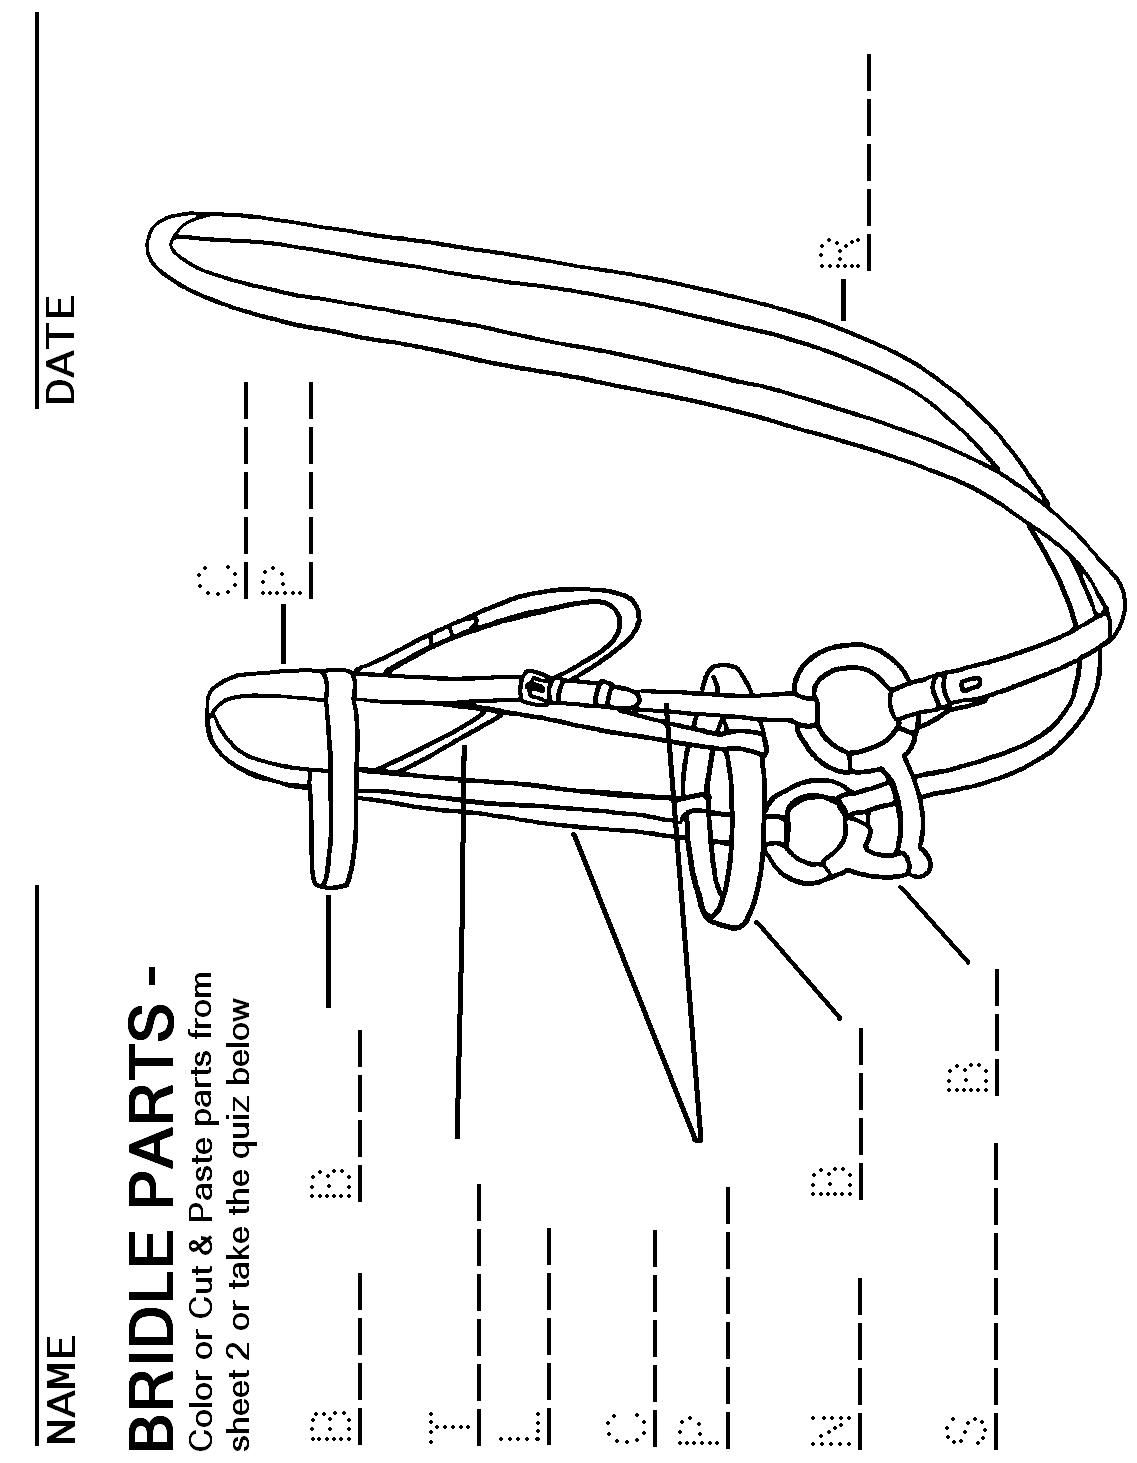 Bridle Parts: fill the blanks #Horsemastership #glenlyon